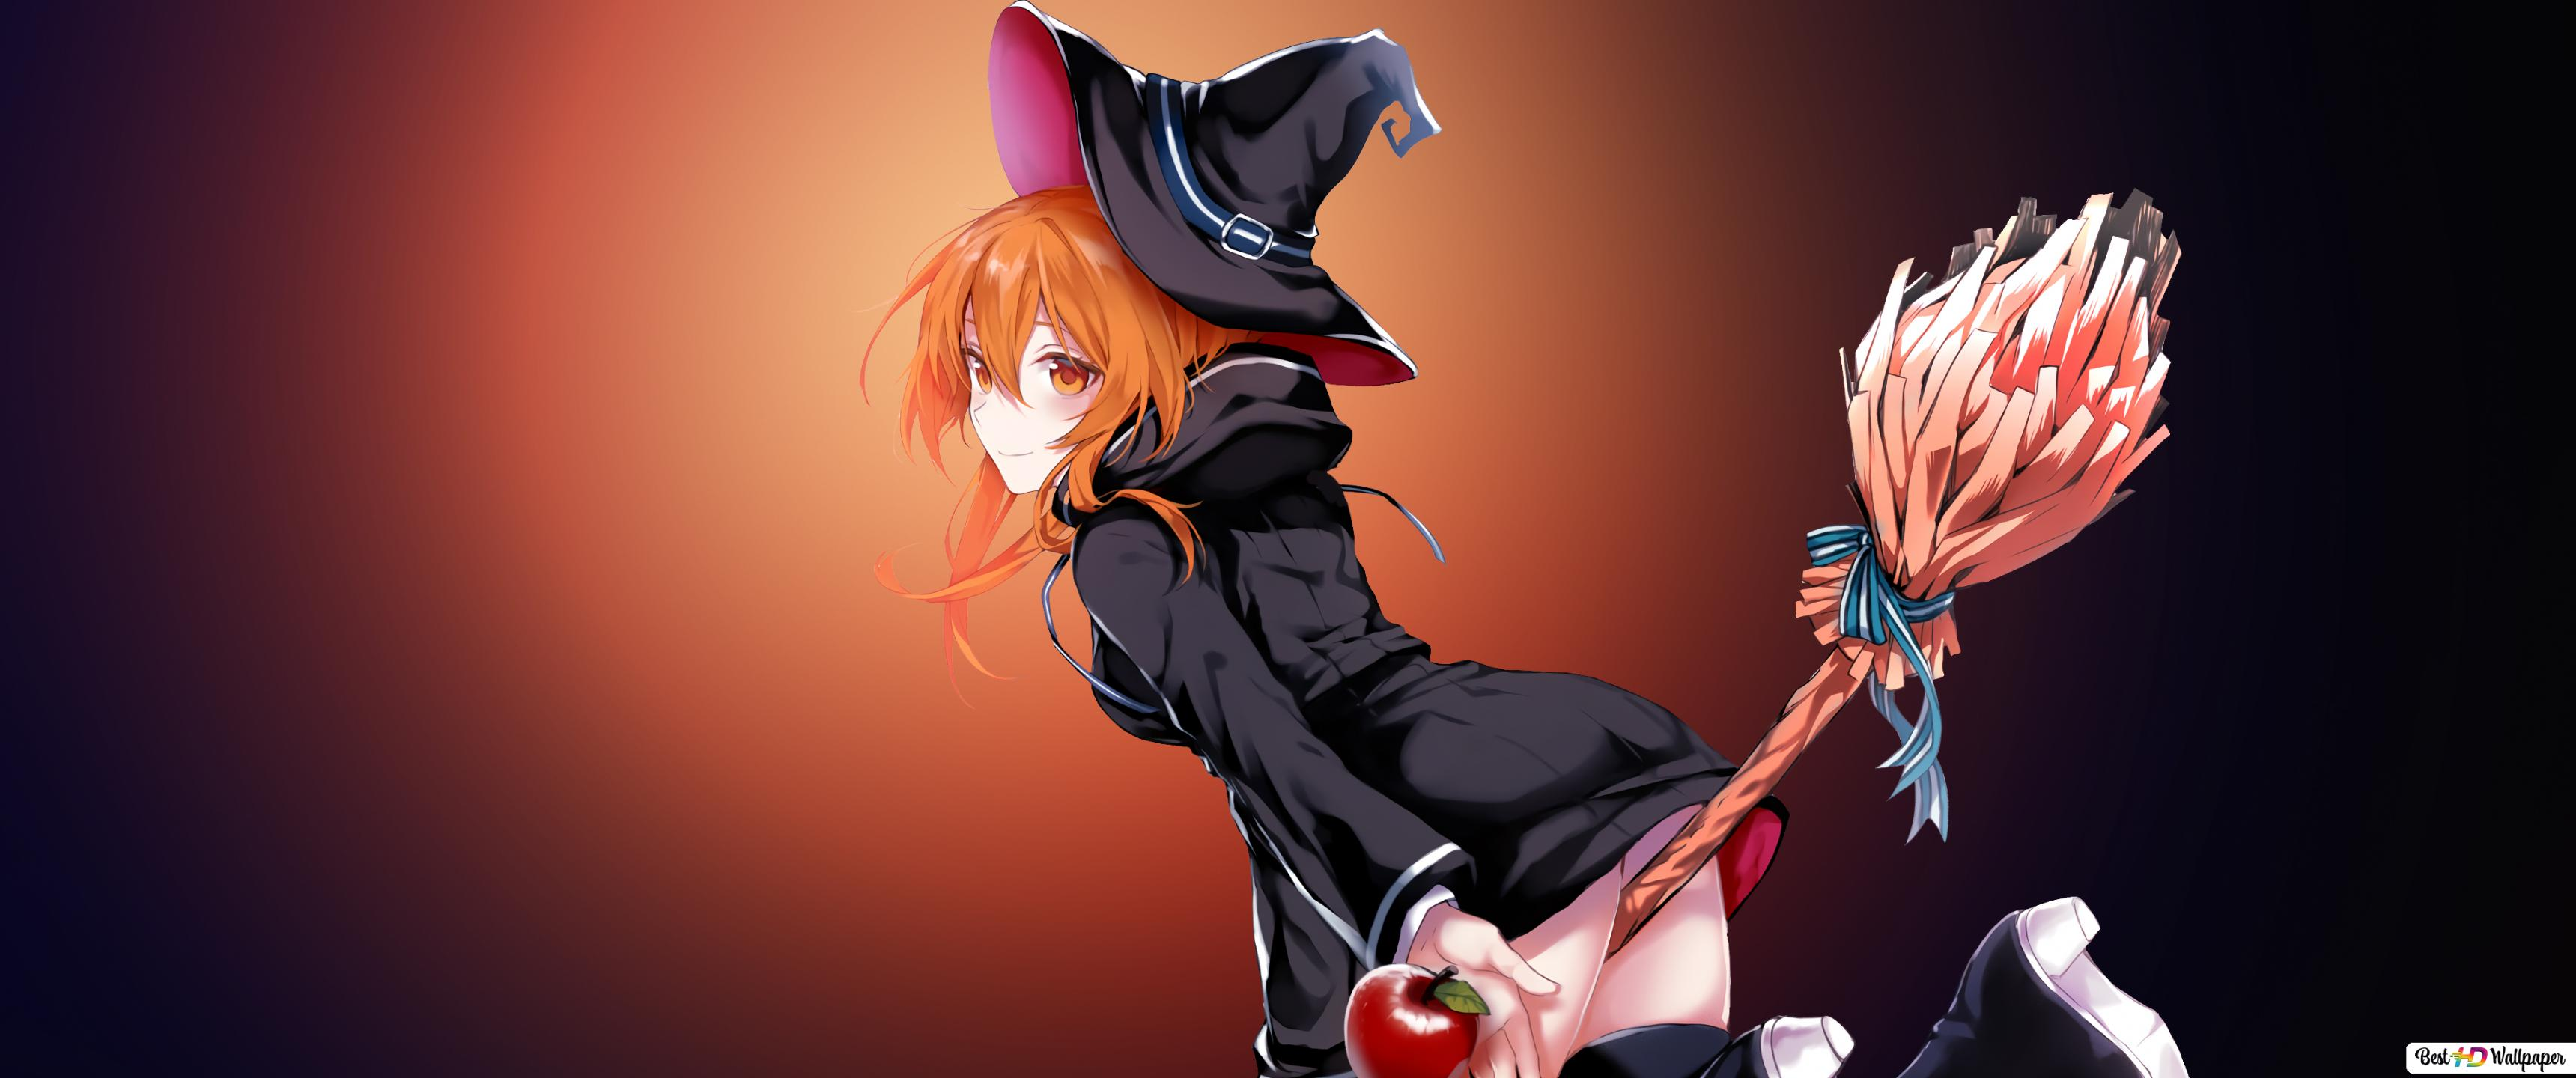 Witch Girl Anime Hd Wallpaper Download